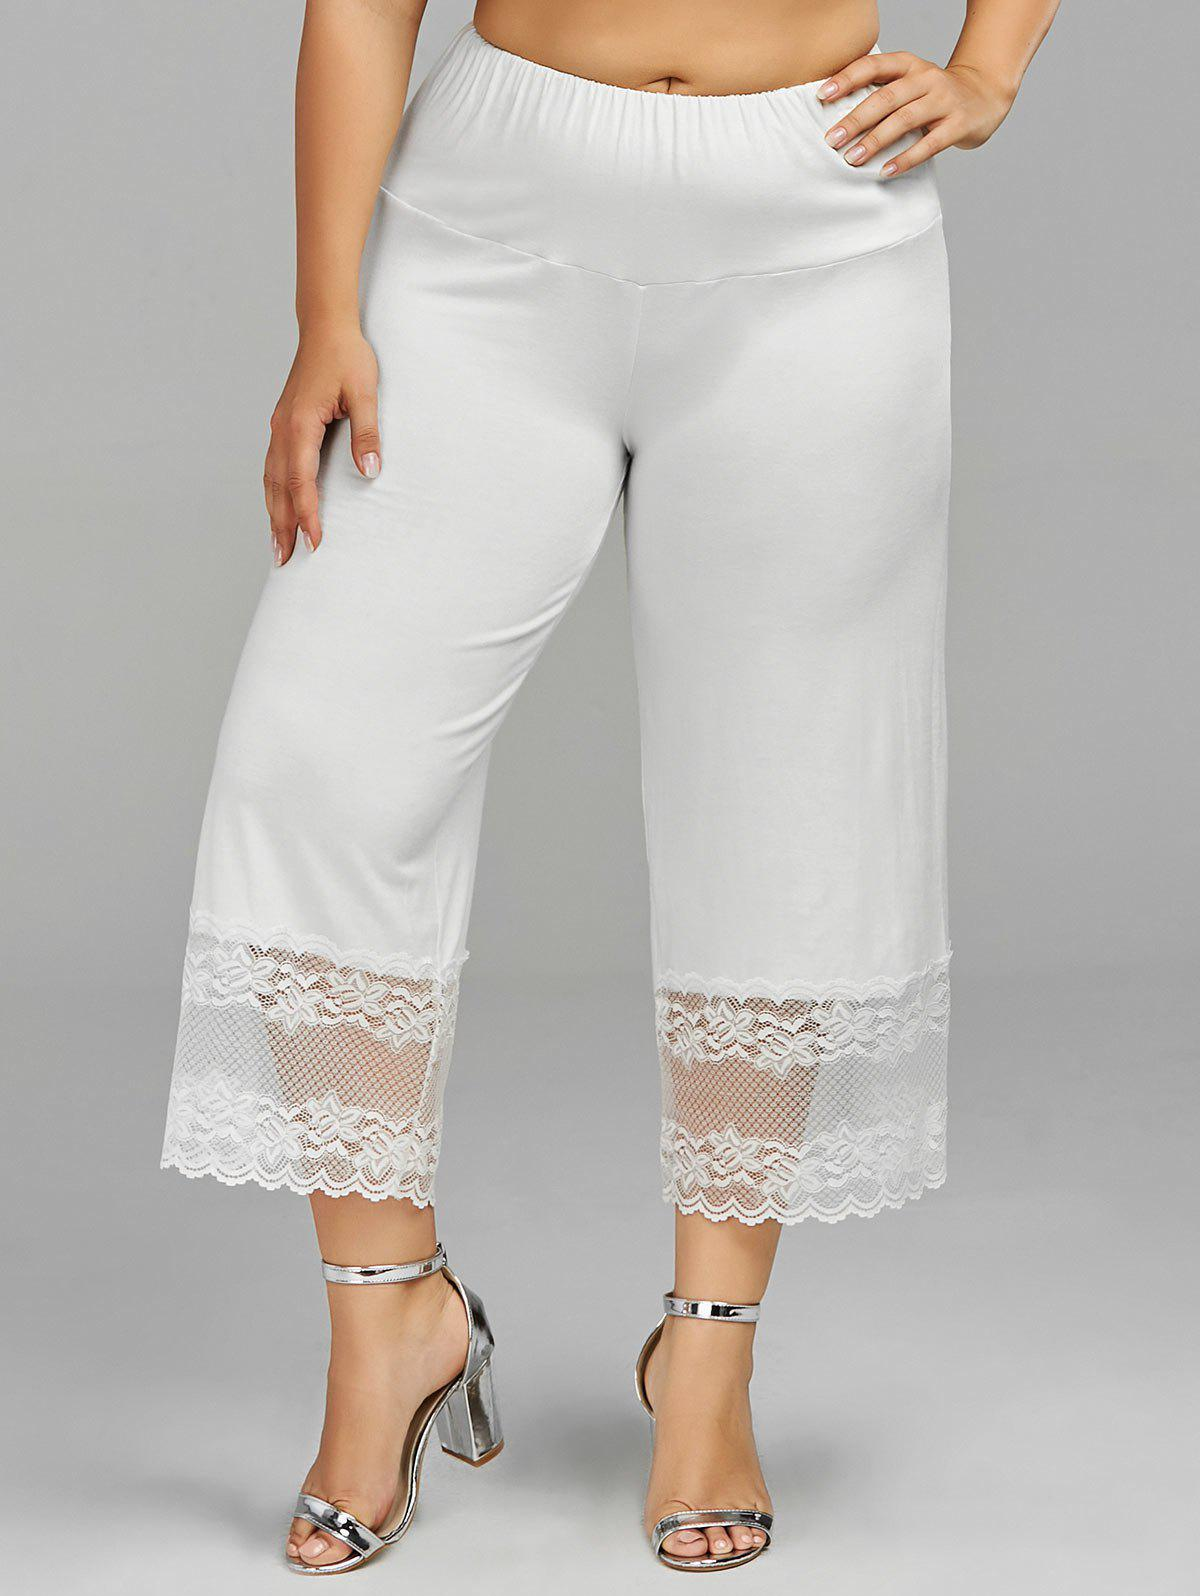 Plus Size Lace Trim Wide Leg PantsWOMEN<br><br>Size: 2XL; Color: WHITE; Style: Casual; Length: Capri; Material: Polyester; Fit Type: Loose; Waist Type: Mid; Closure Type: Elastic Waist; Pattern Type: Solid; Pant Style: Wide Leg Pants; With Belt: No; Weight: 0.2700kg; Package Contents: 1 x Pants;